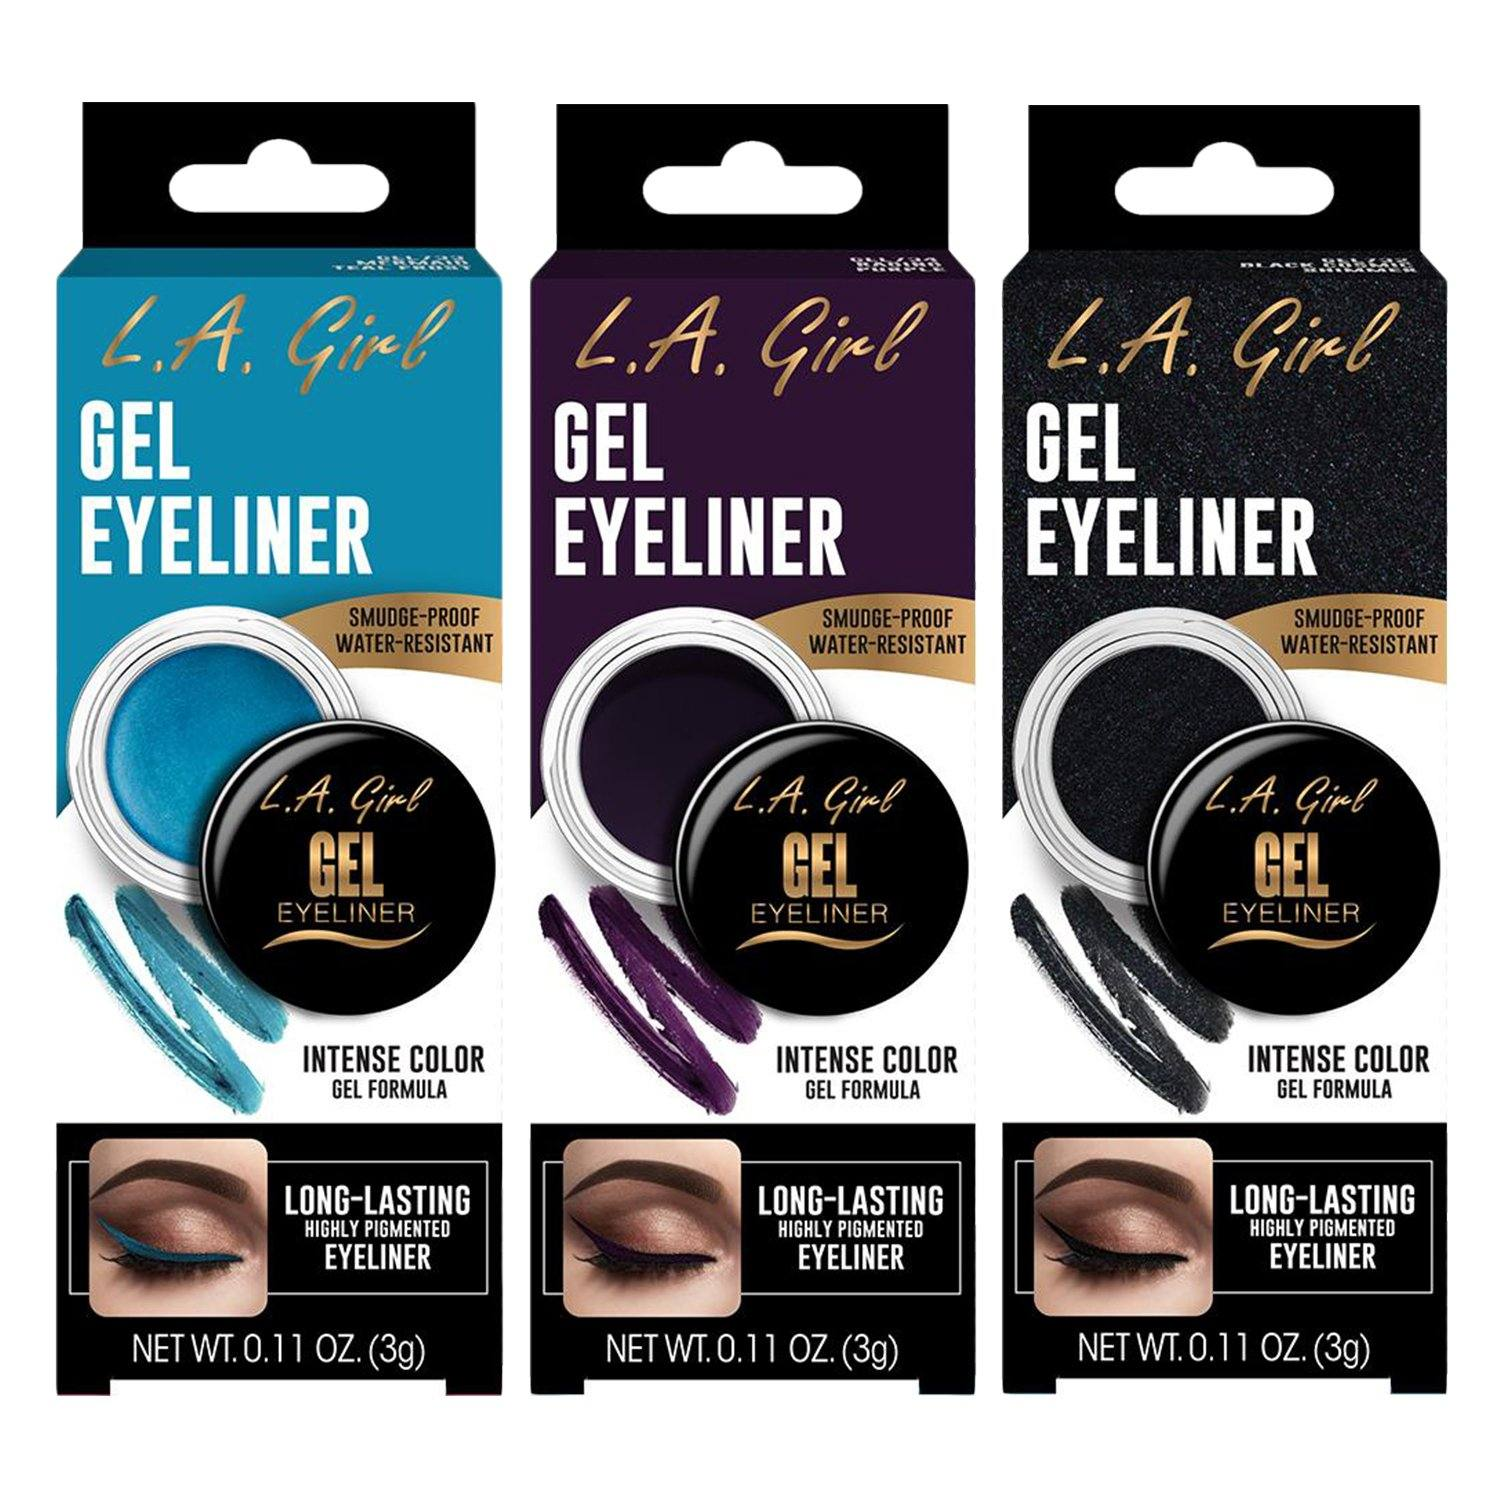 LA Girl Gel Eyeliner #GEL (3PC)